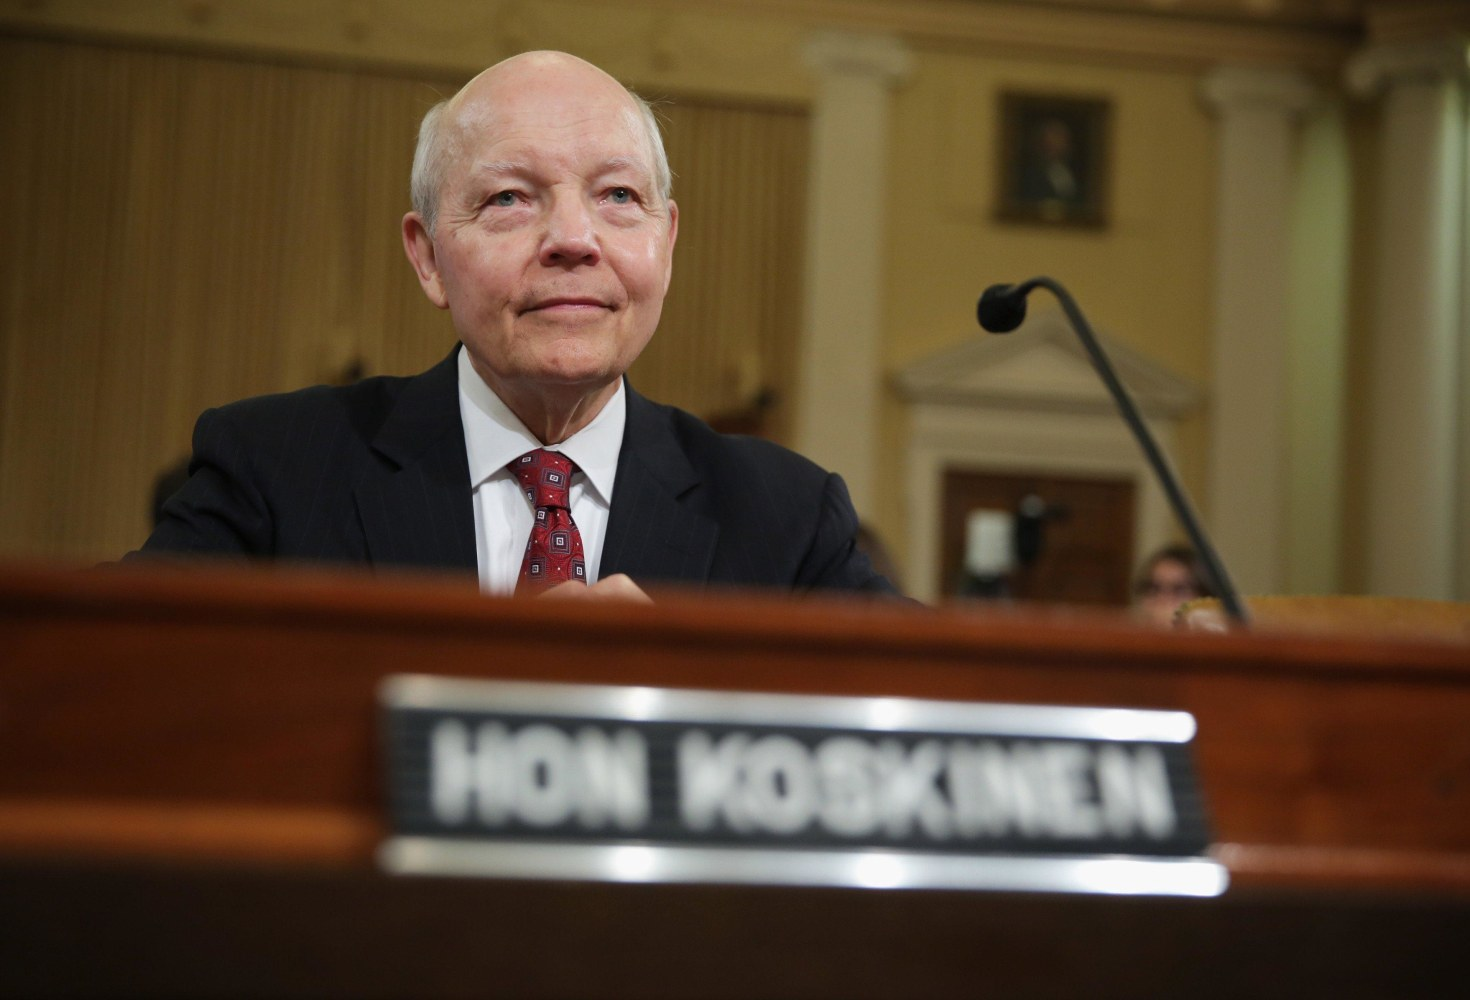 Facing impeachment threat, IRS chief visiting House panel